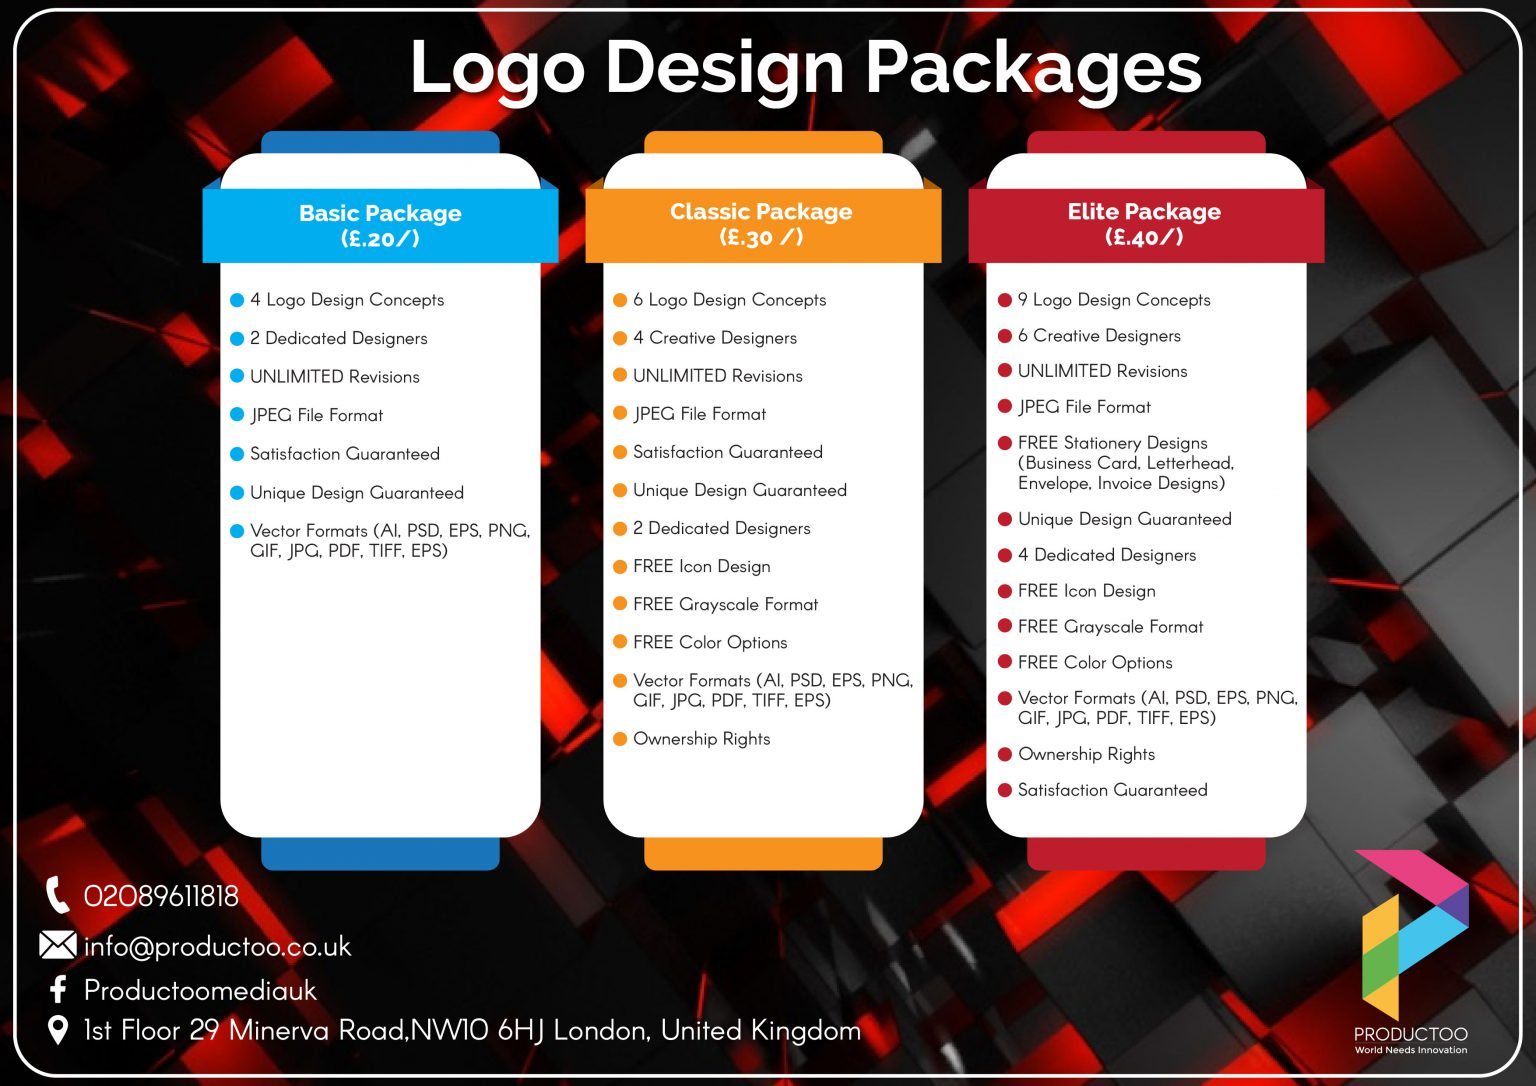 Productoo logo package